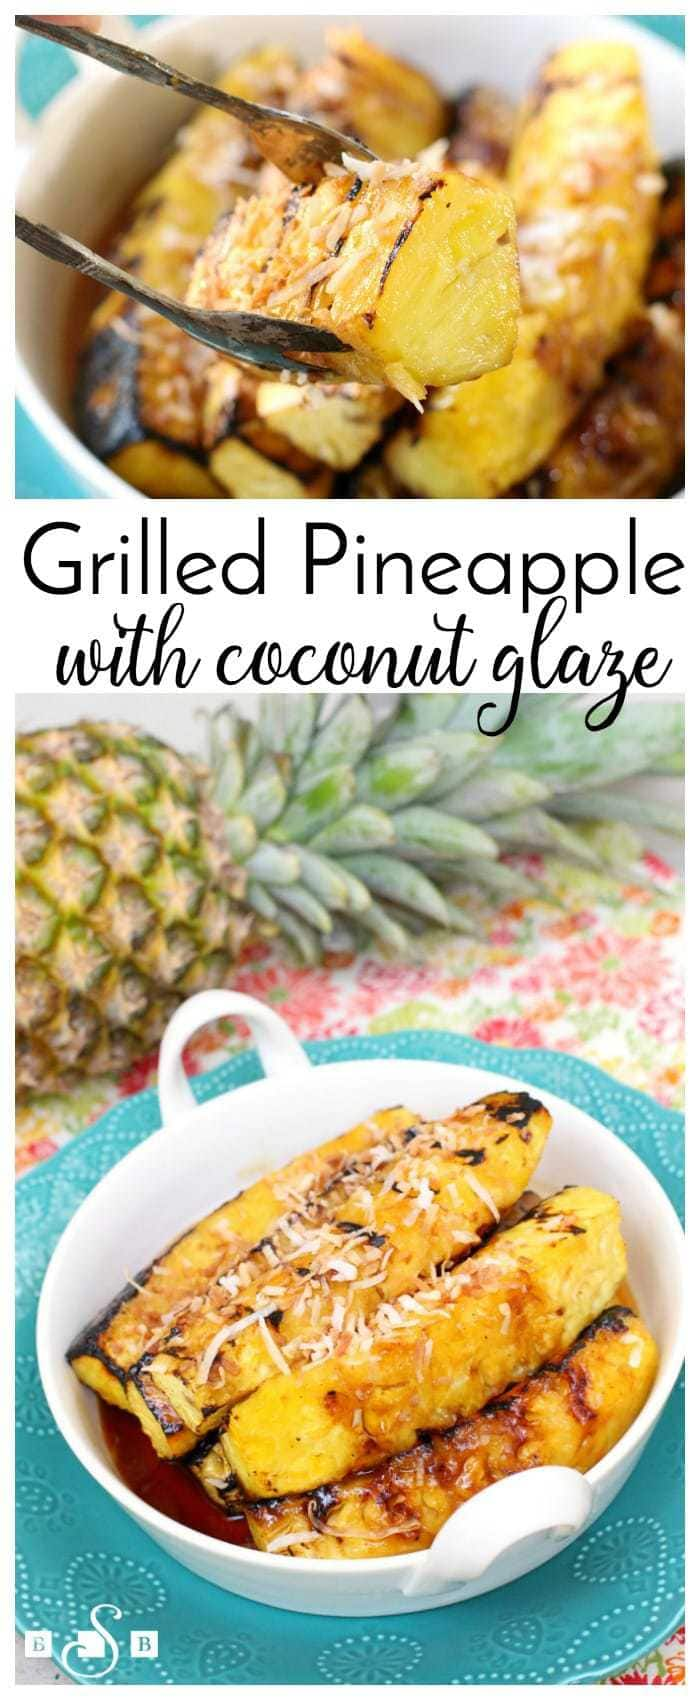 Grilled Pineapple with Coconut Cream Glaze only takes 4 ingredients, is healthy, and is delicious. Using a pineapple, cream of coconut, coconut flakes, and a touch of brown sugar, the only hard part is knowing how to cut a pineapple! #grilledpineapple #coconutglaze #howtocutapineapple #coconutcream #creamofcoconut #recipefrom Butter With a Side of Bread